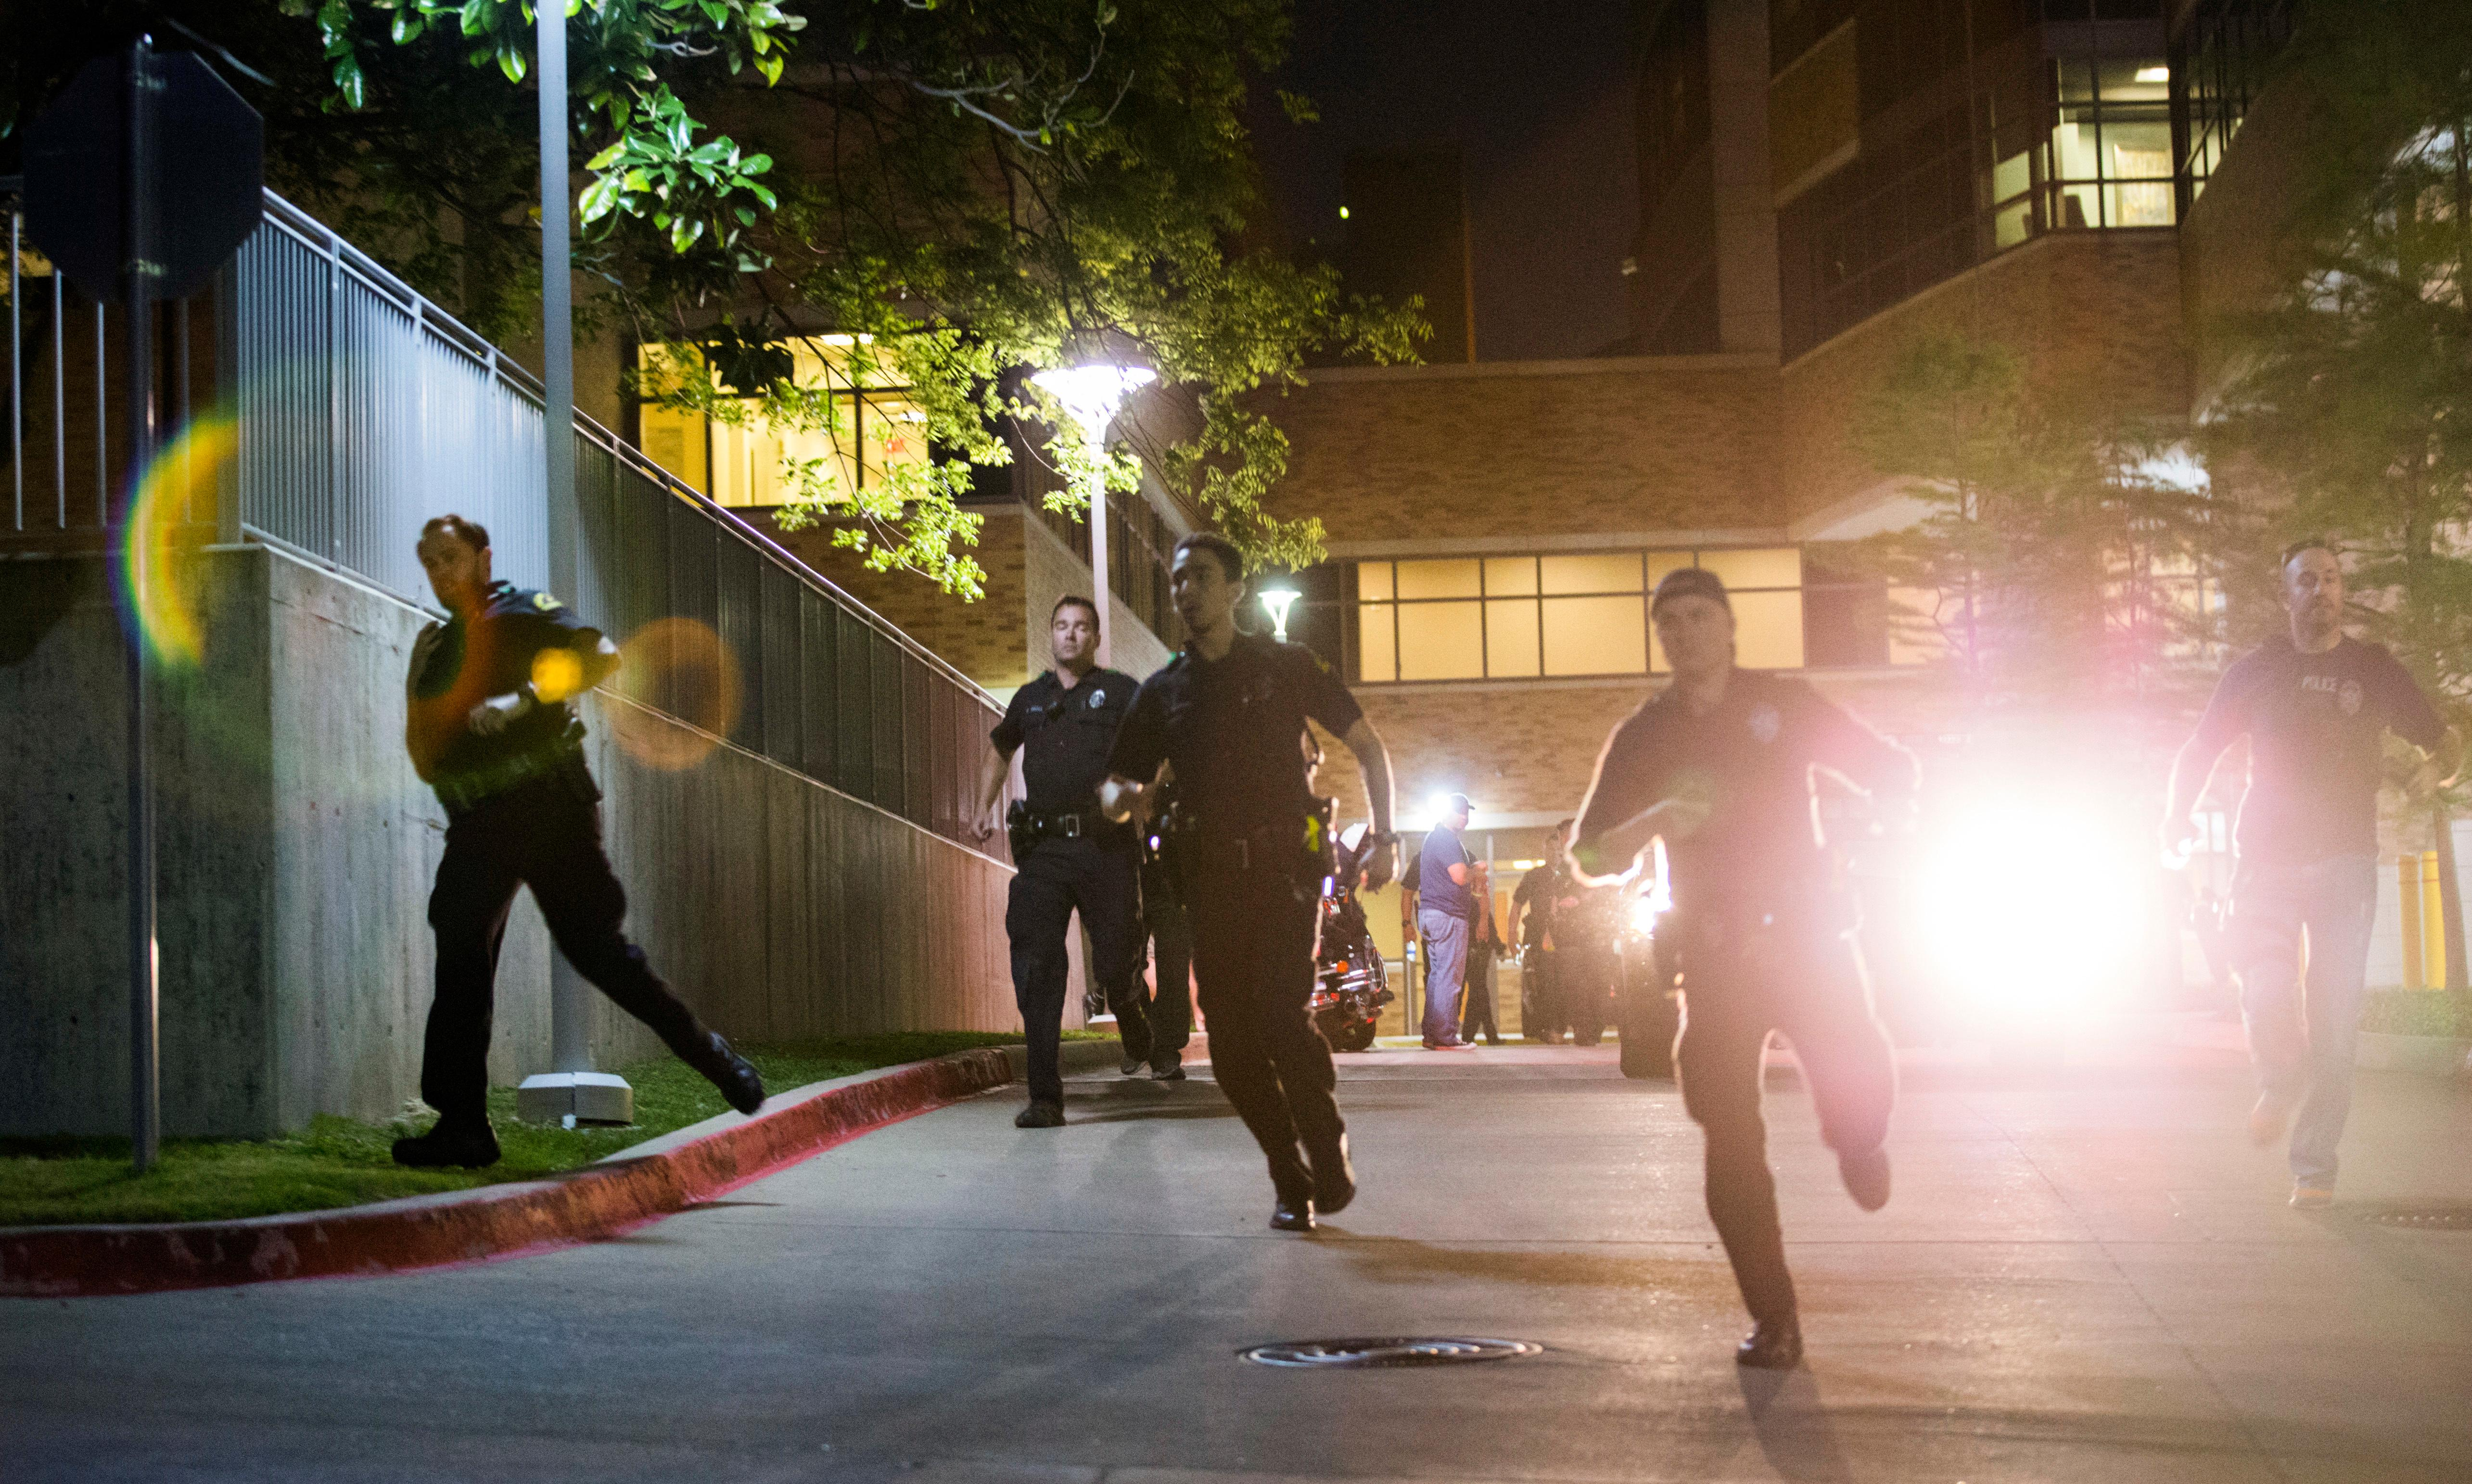 Police officers run away from the emergency room to their cars at Texas Health Presbyterian Hospital Dallas after a man shot two officers outside a Home Depot on Tuesday, April 24, 2018, in Dallas. (Ashley Landis/The Dallas Morning News via AP)